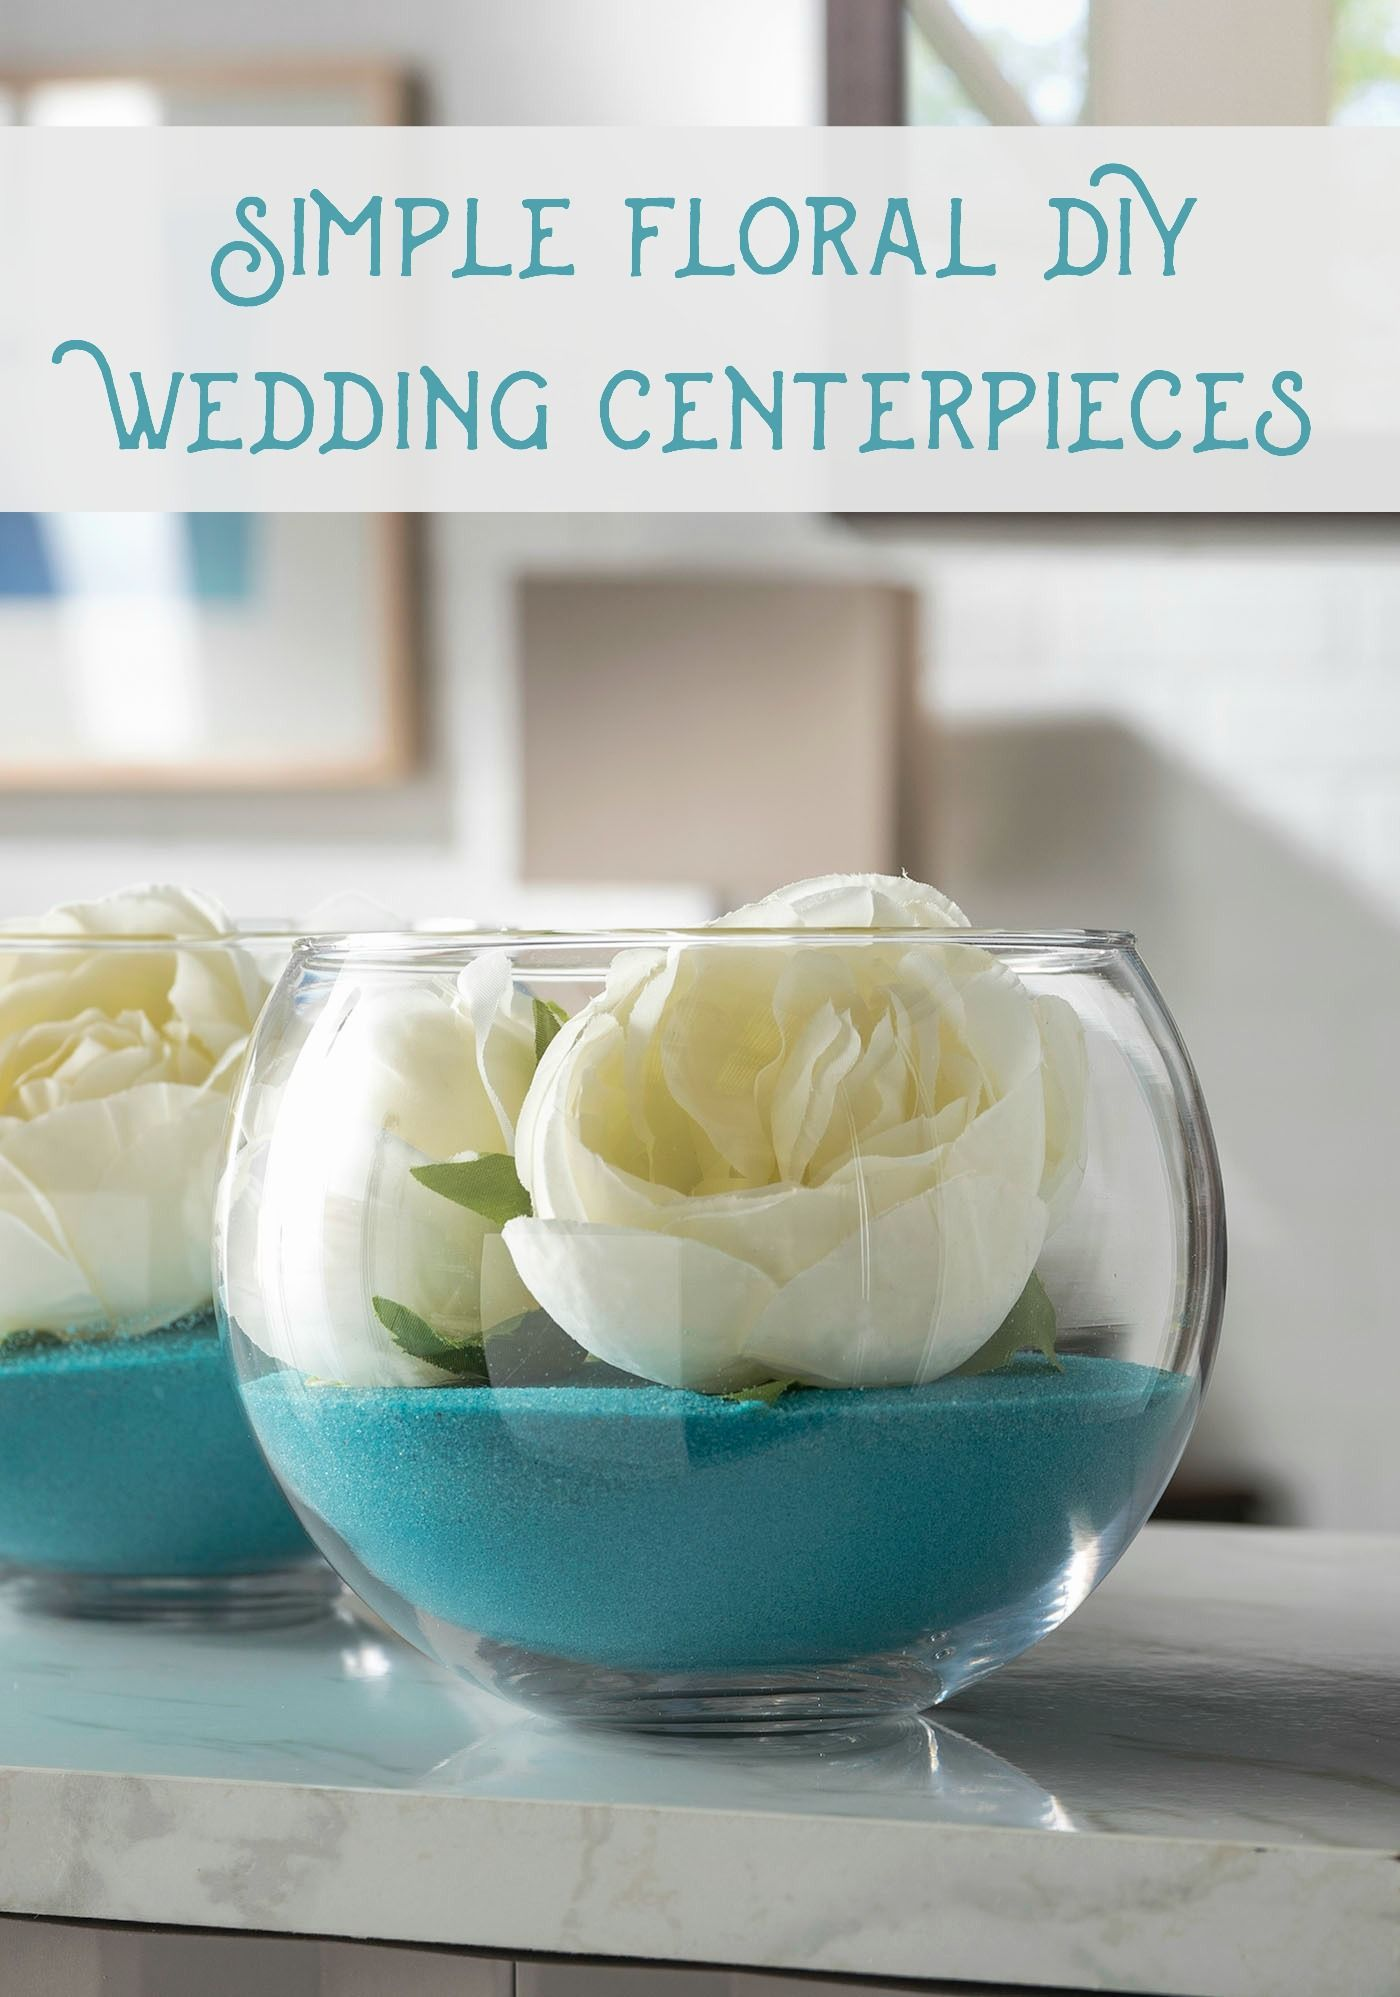 Quick floral diy wedding centerpieces wedding centerpieces diy learn how to make these simple and beautiful diy wedding centerpieces in a matter of minutes just a few steps and youre done so budget friendly junglespirit Choice Image